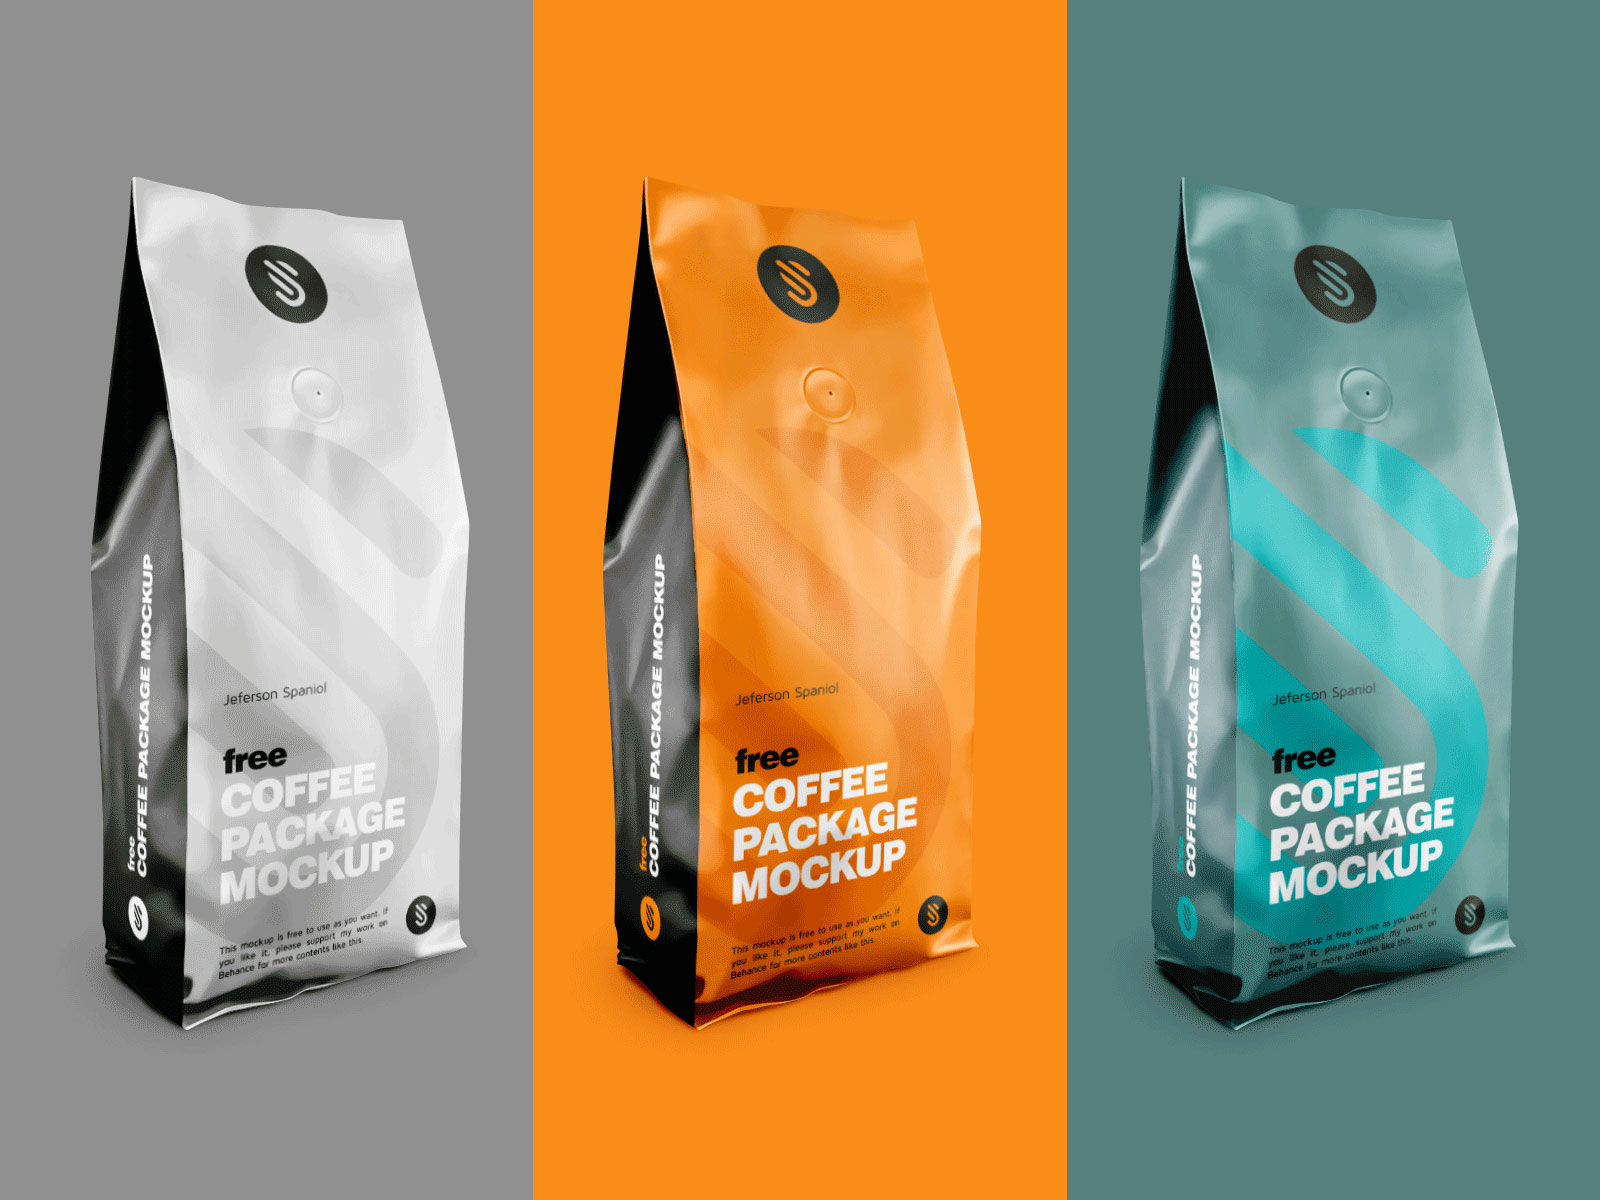 free aluminium coffee standing pouch packaging mockup psd